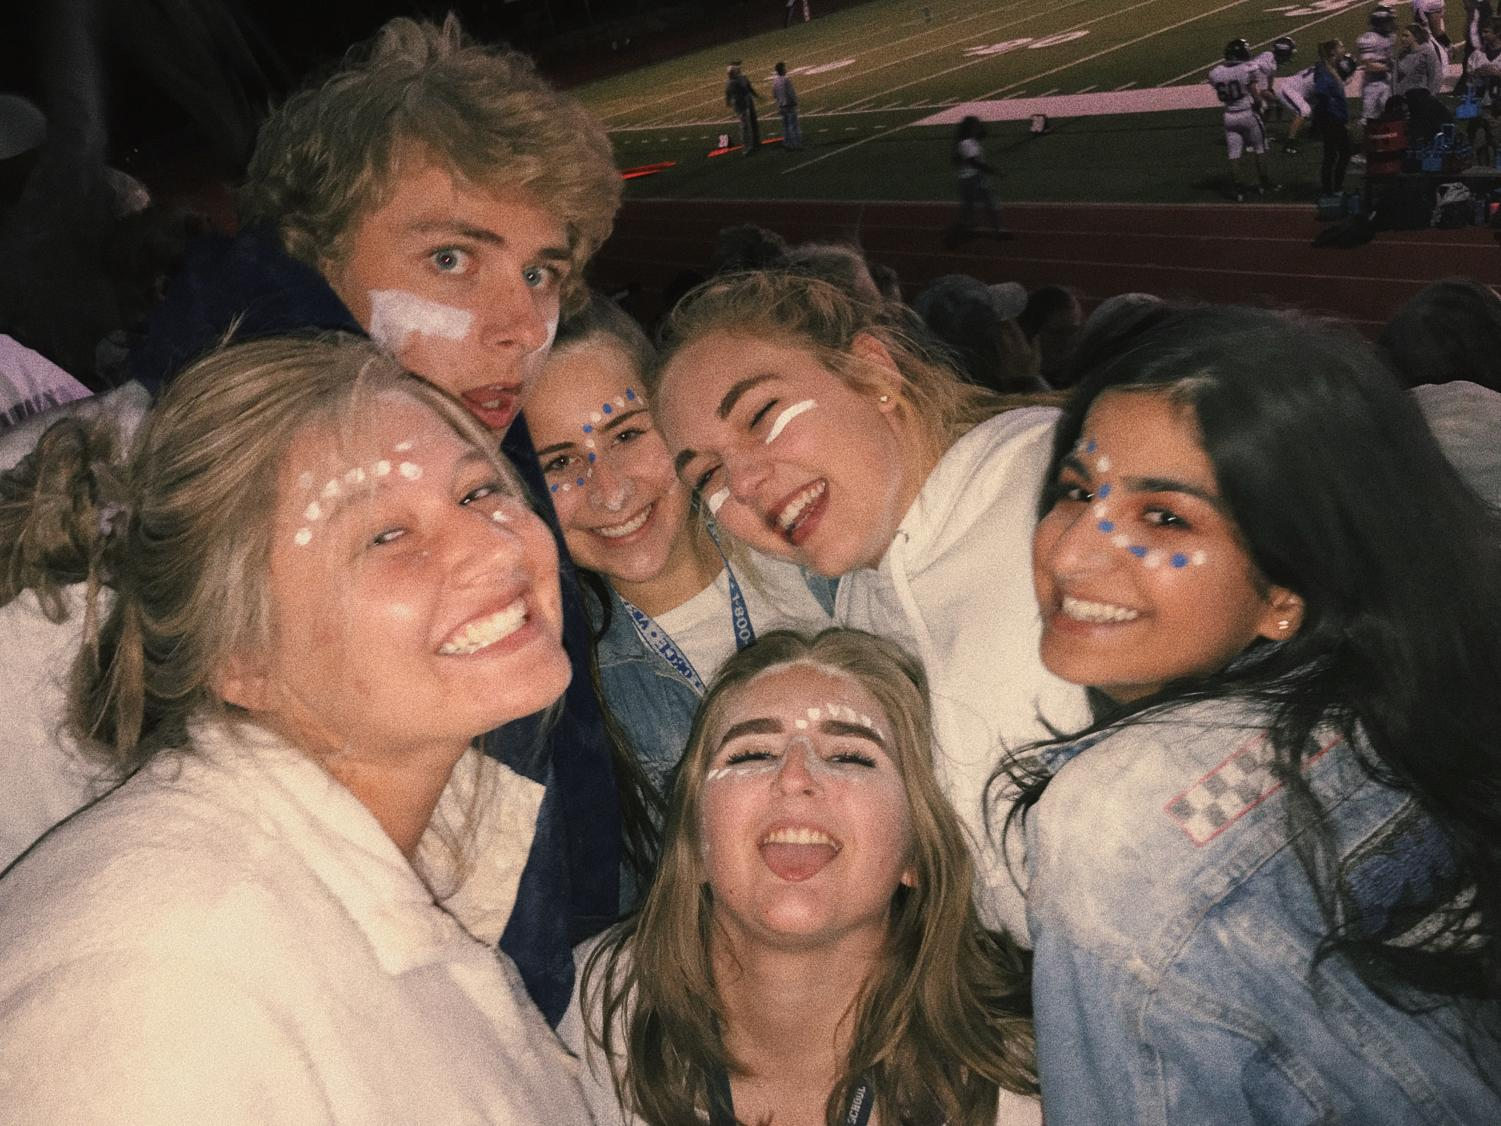 A group of AAHS juniors smiling at the white out football game at Cheyenne Mountain, captured moments after cups full of flour were thrown in the cold air. (Top row left to right: Carter Wood, Megan Pharris, Casey Hogan. Bottom row left to right: Acacia Ryska, Callissa Steel, Parmida Mahdavi.)